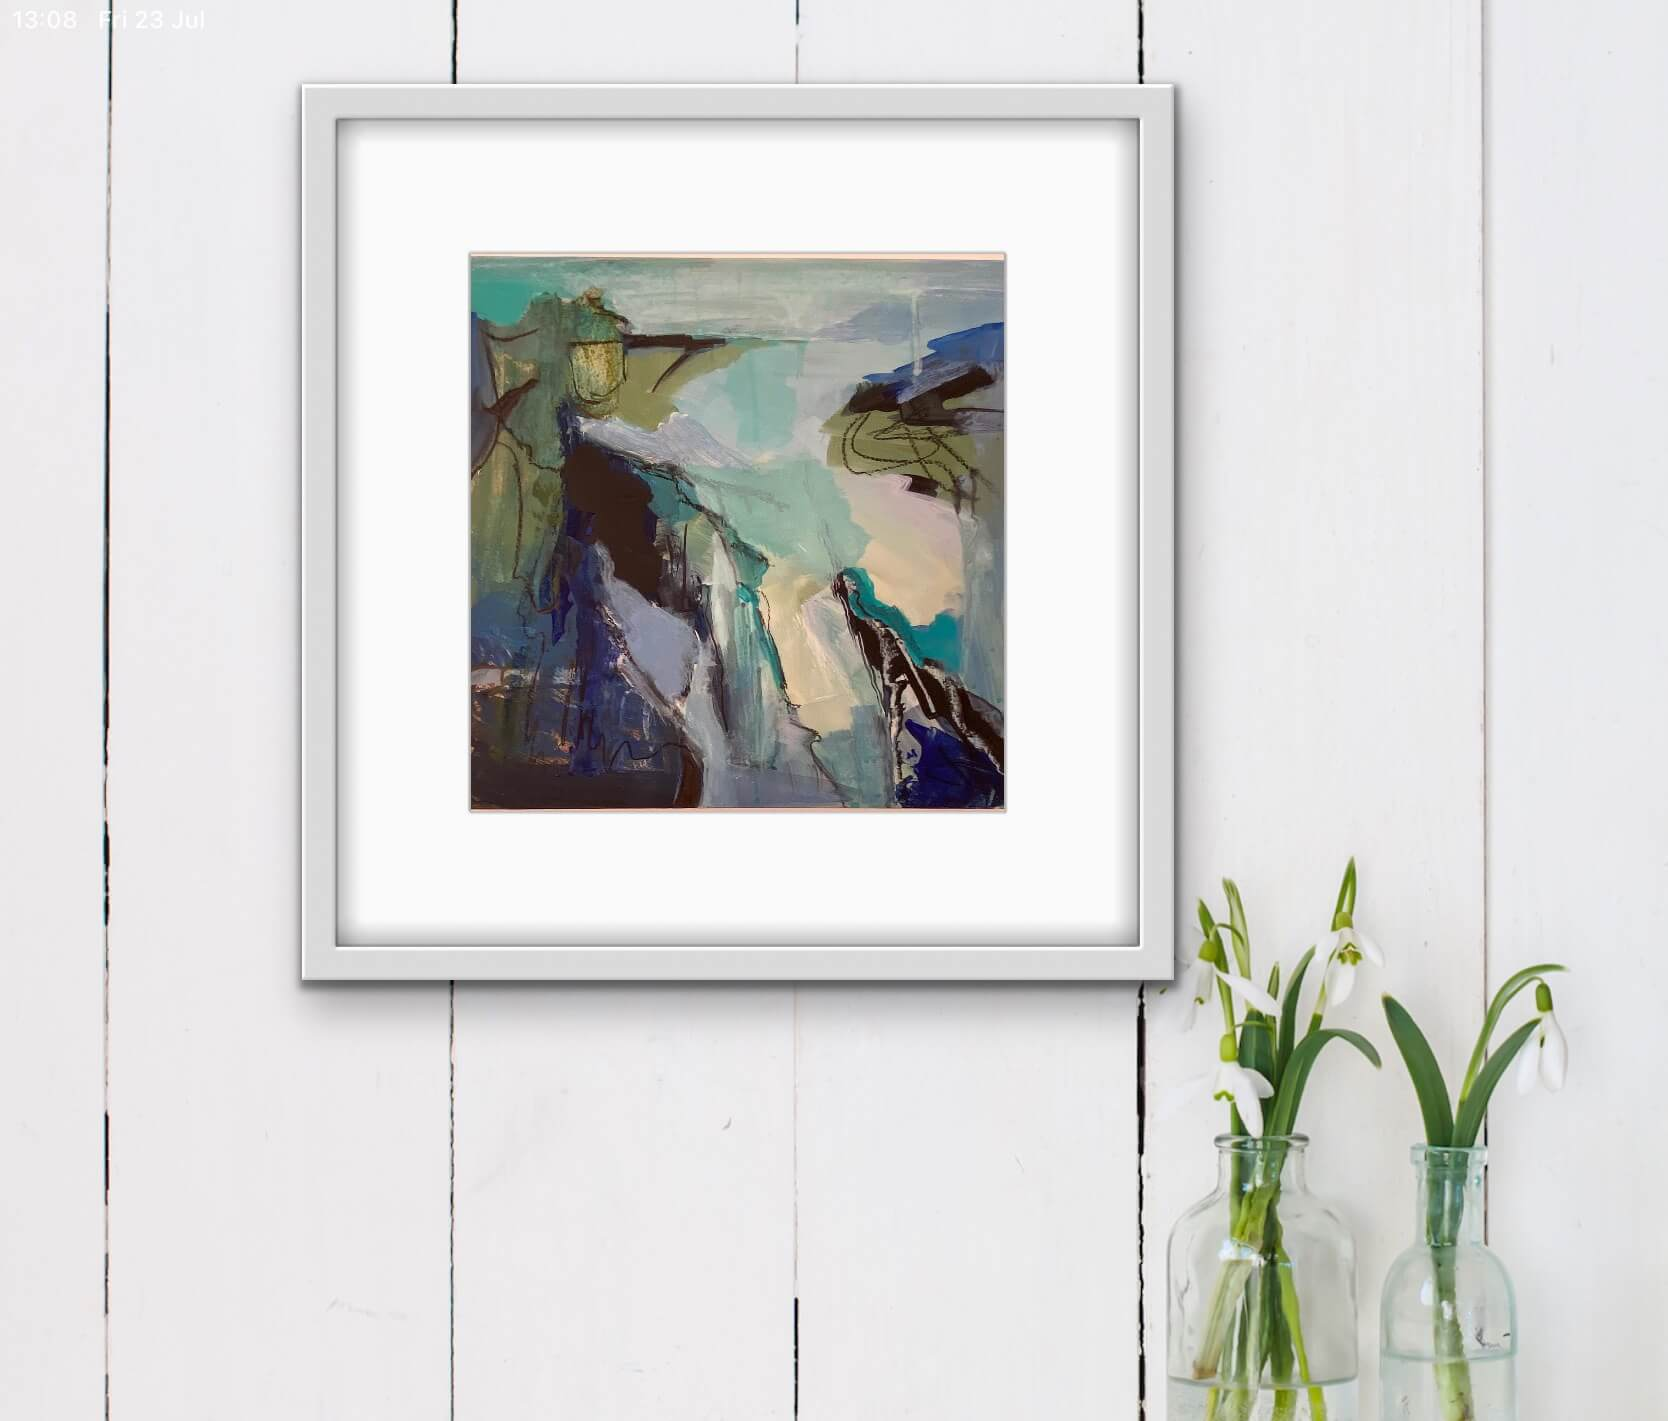 Rock Pools Abstract Painting Hanging in Hall Way